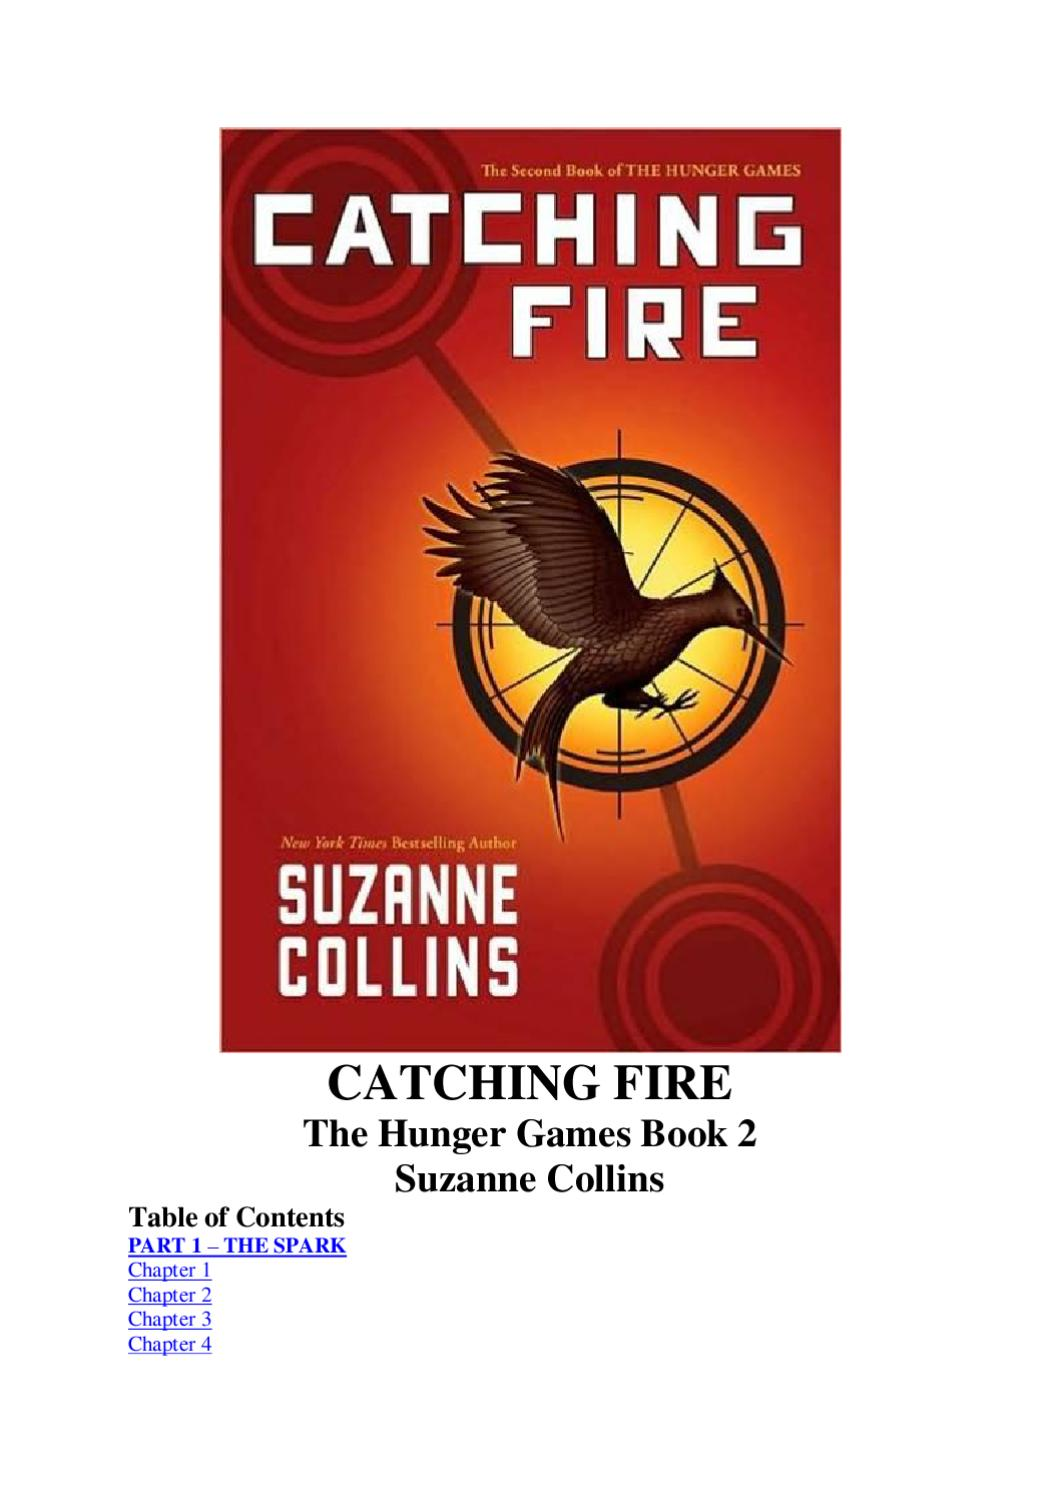 hunger games opinion essay Katniss everdeen essay examples 6 total results the selection of competitors in the hunger games, a novel series by suzanne collins 890 words 2 pages.